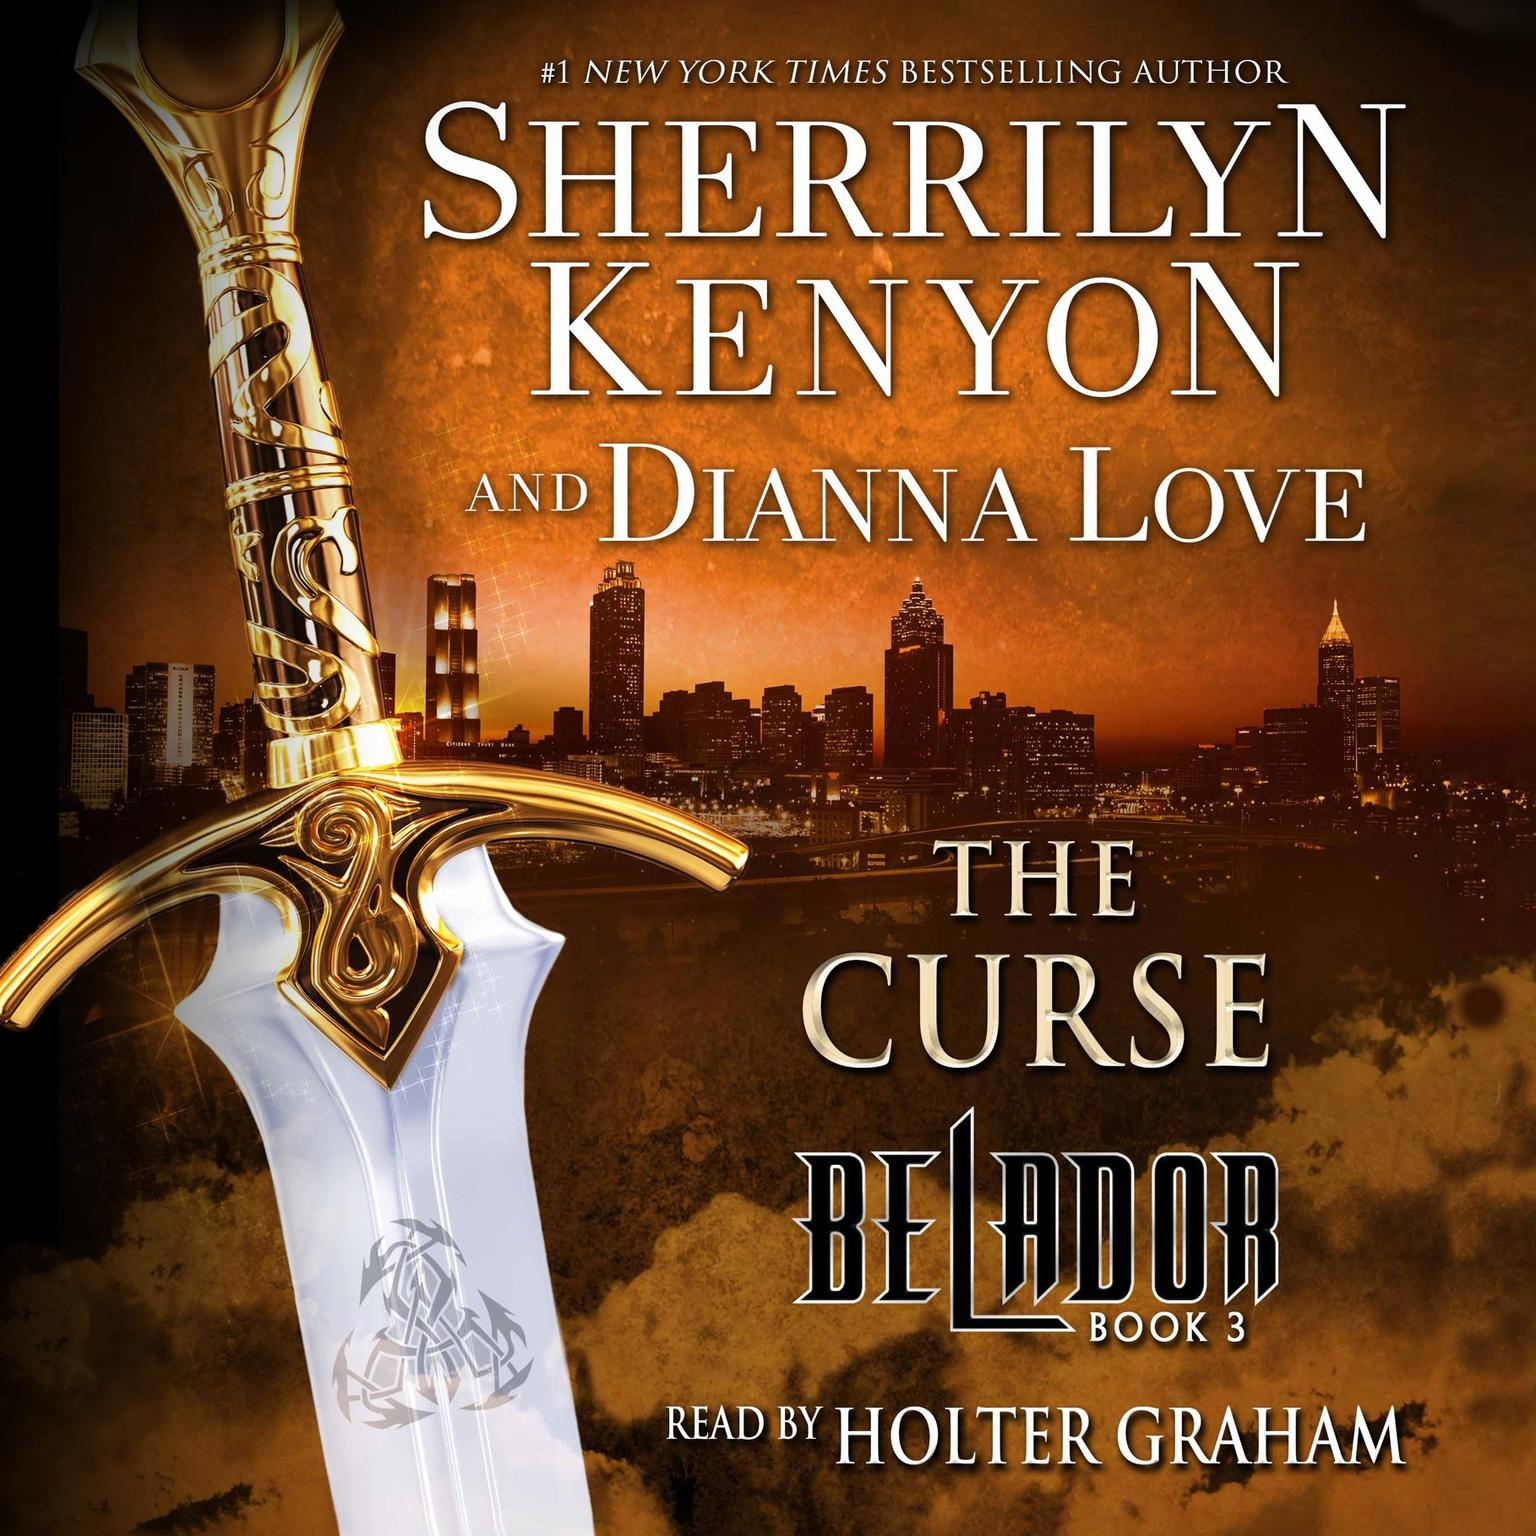 Printable The Curse: Book 3 in the Belador Series Audiobook Cover Art